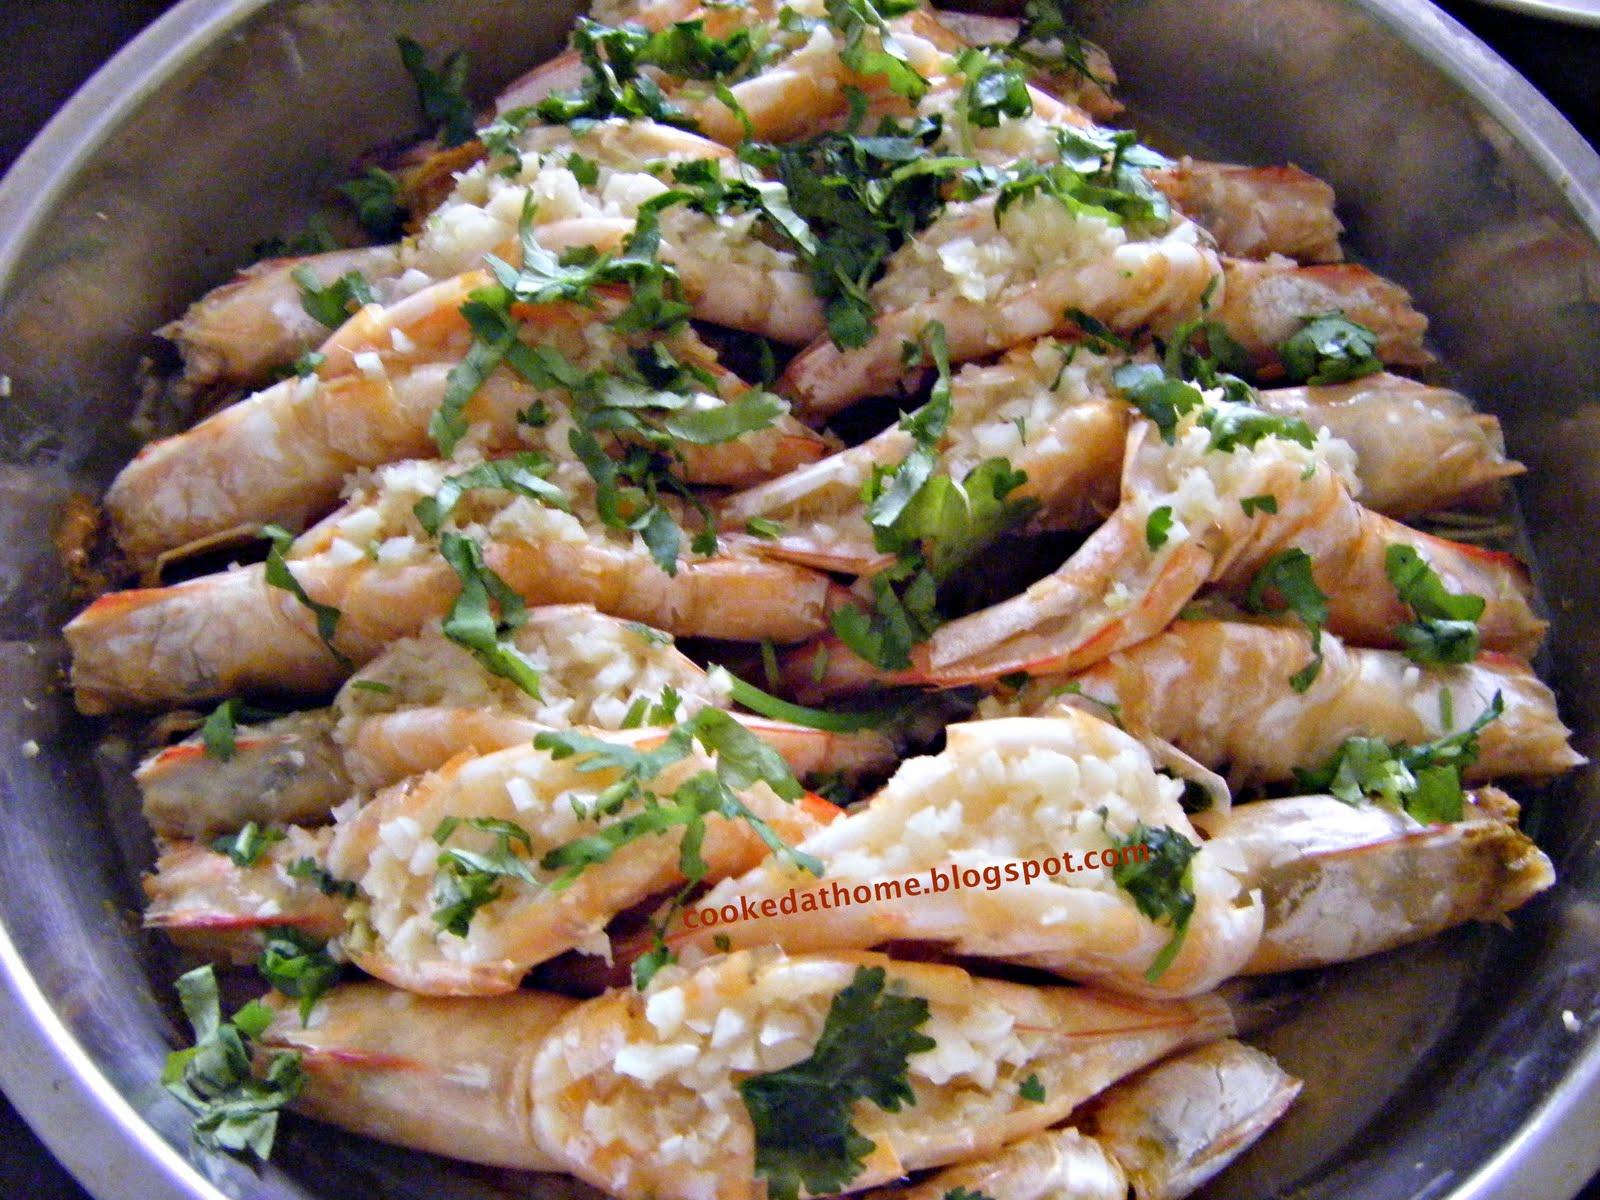 Cooking @ Home: Steamed Tiger Prawns with Garlic and Ginger